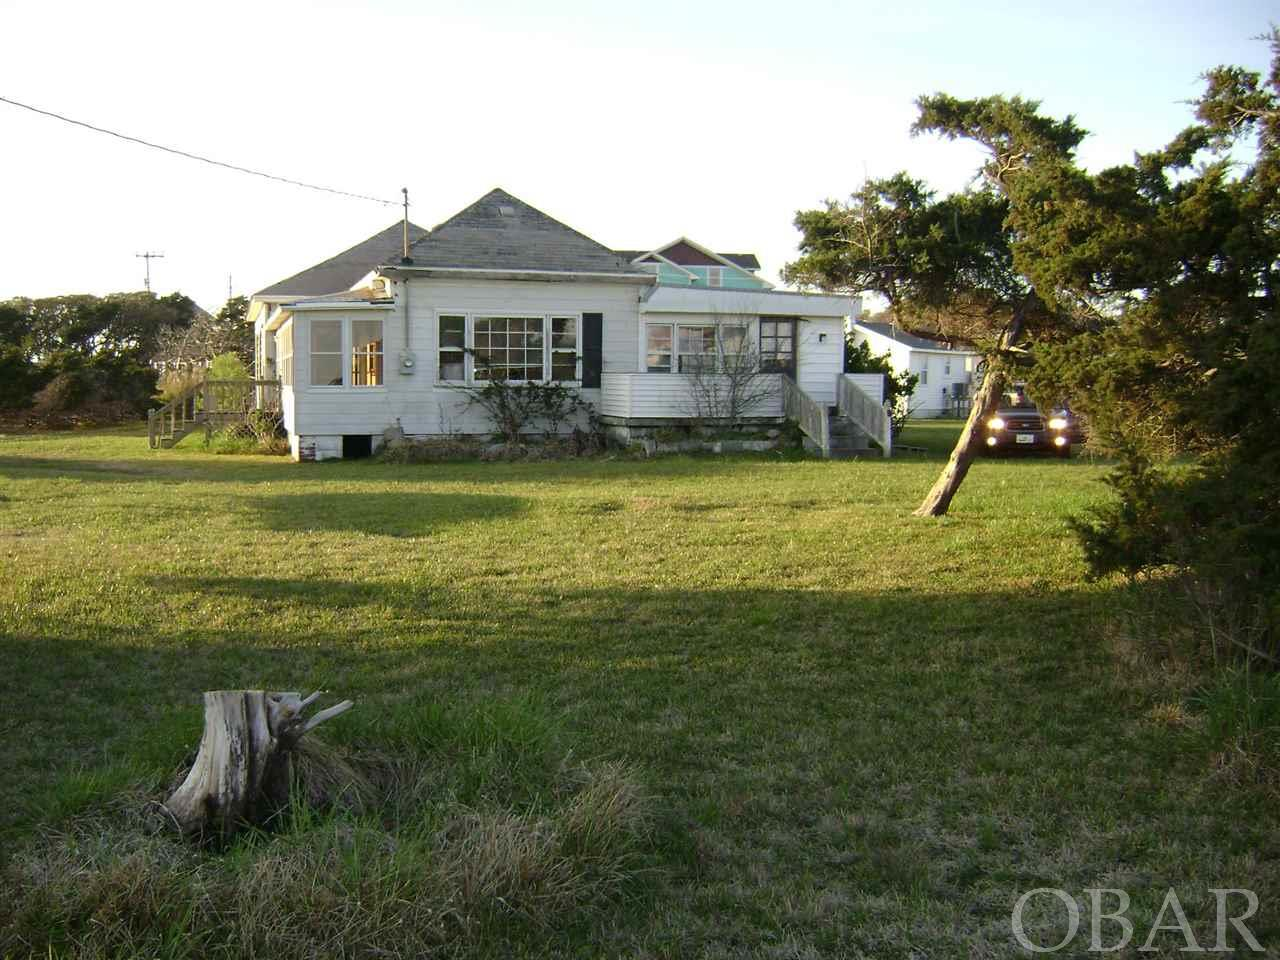 Outer Banks Canalfront Homes For Sale